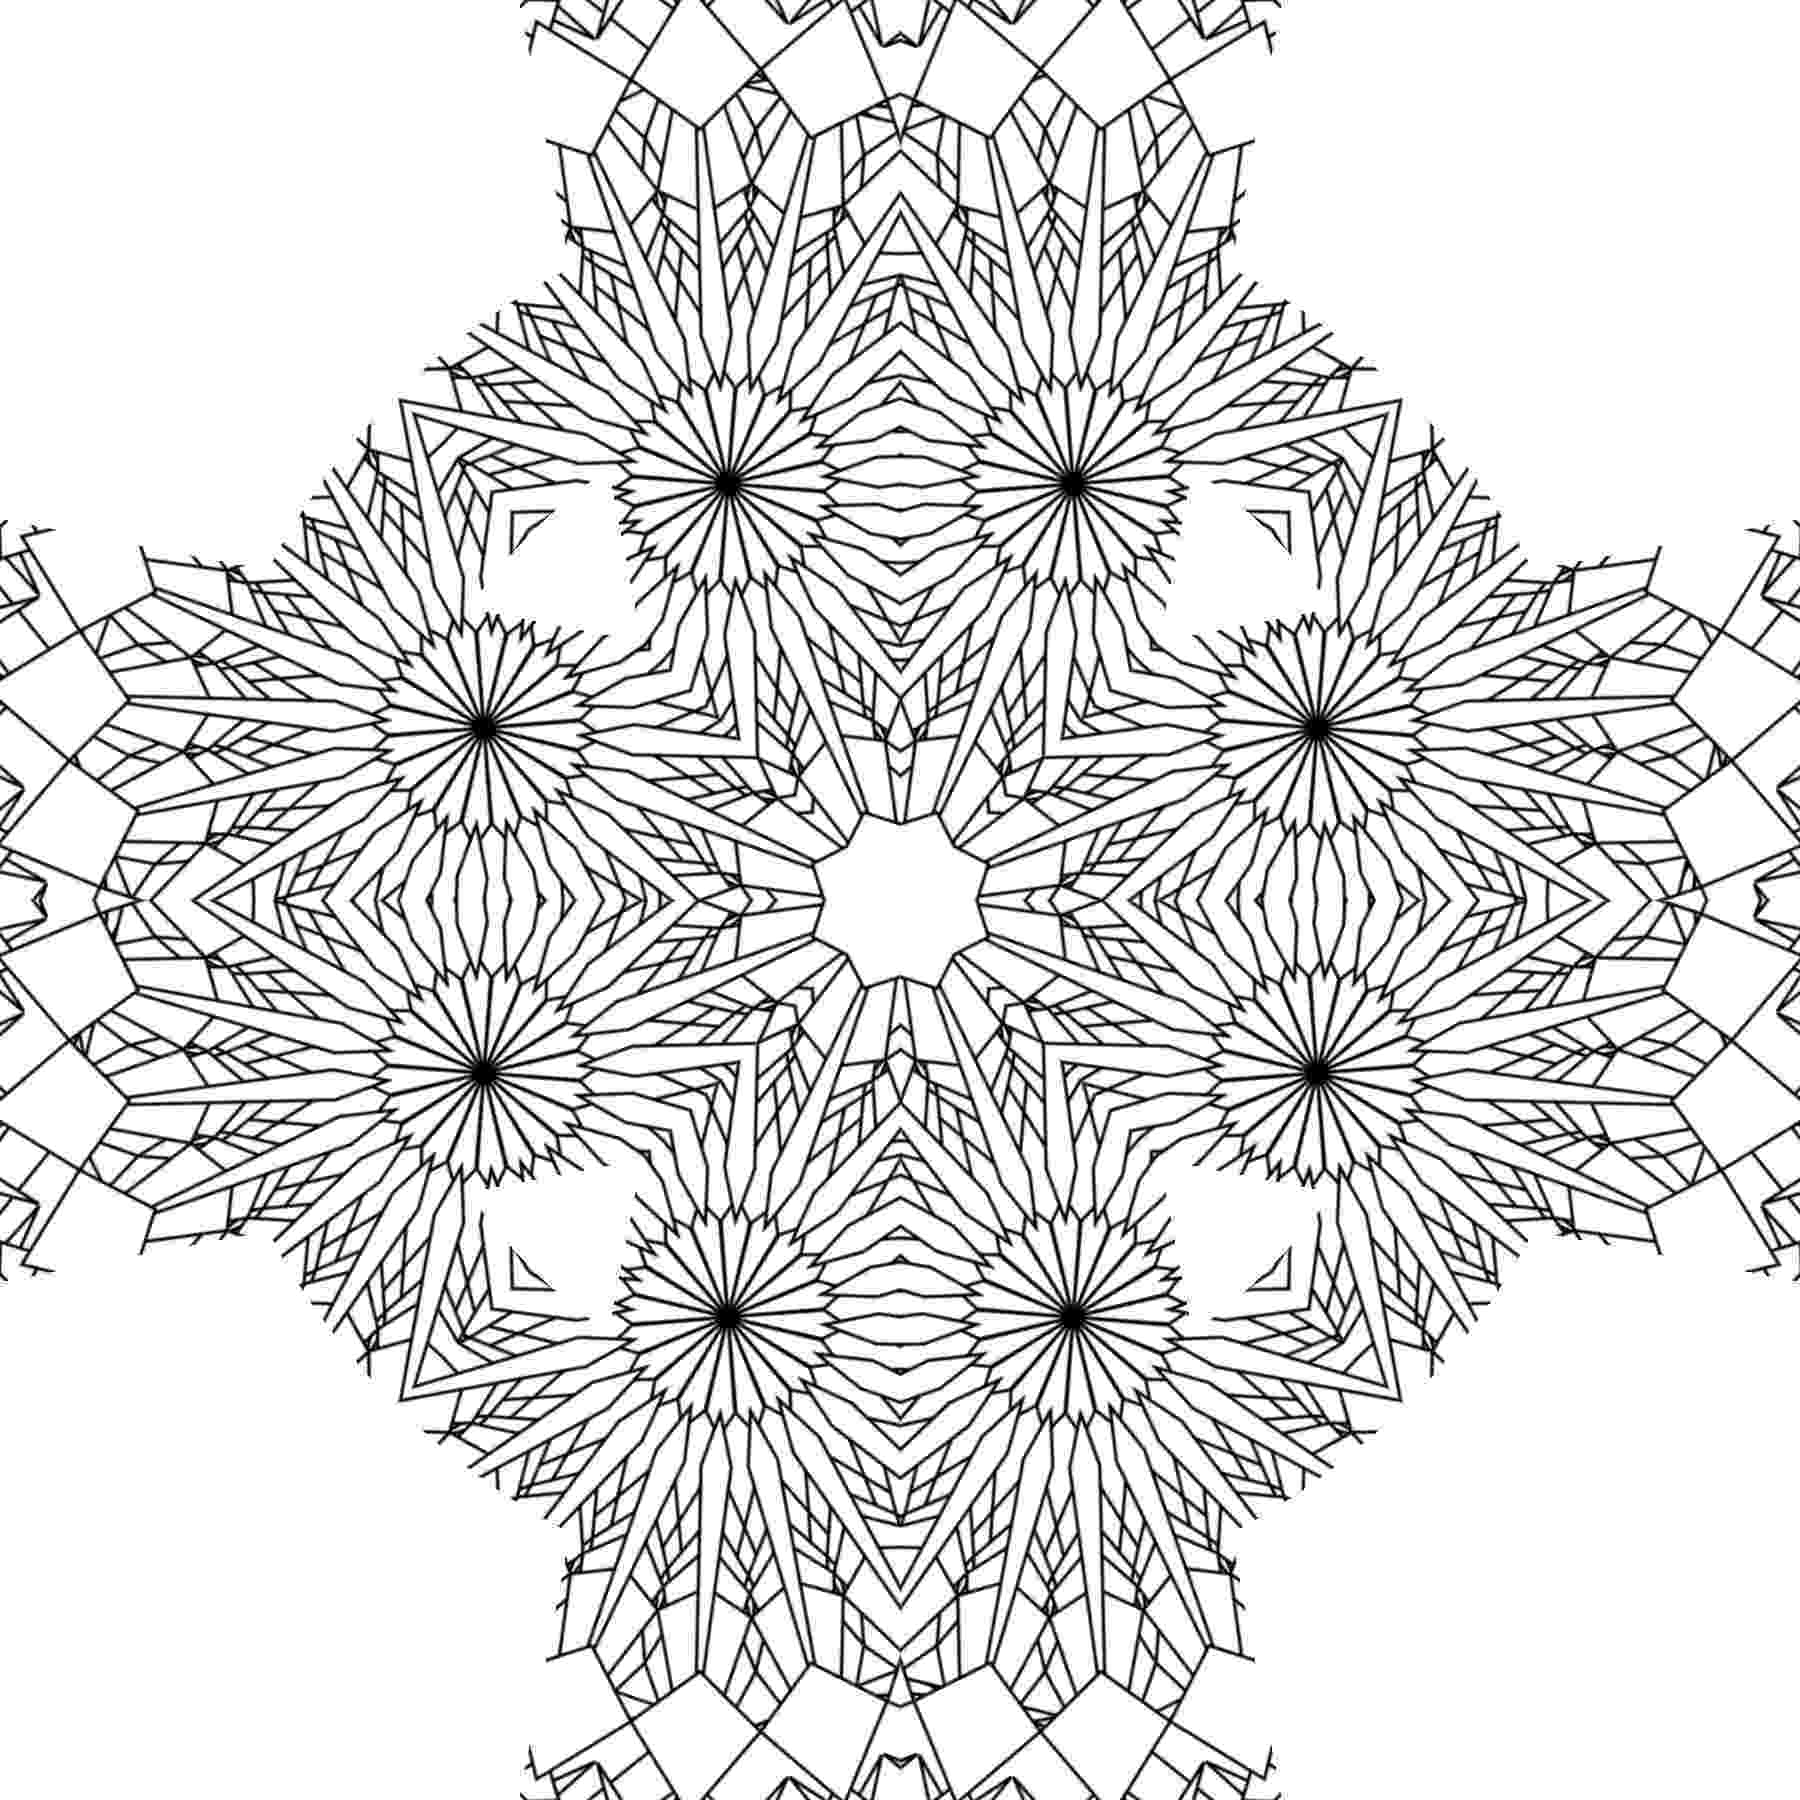 colouring pages of patterns 25 coloring pages including mandalas geometric designs rug pages of patterns colouring